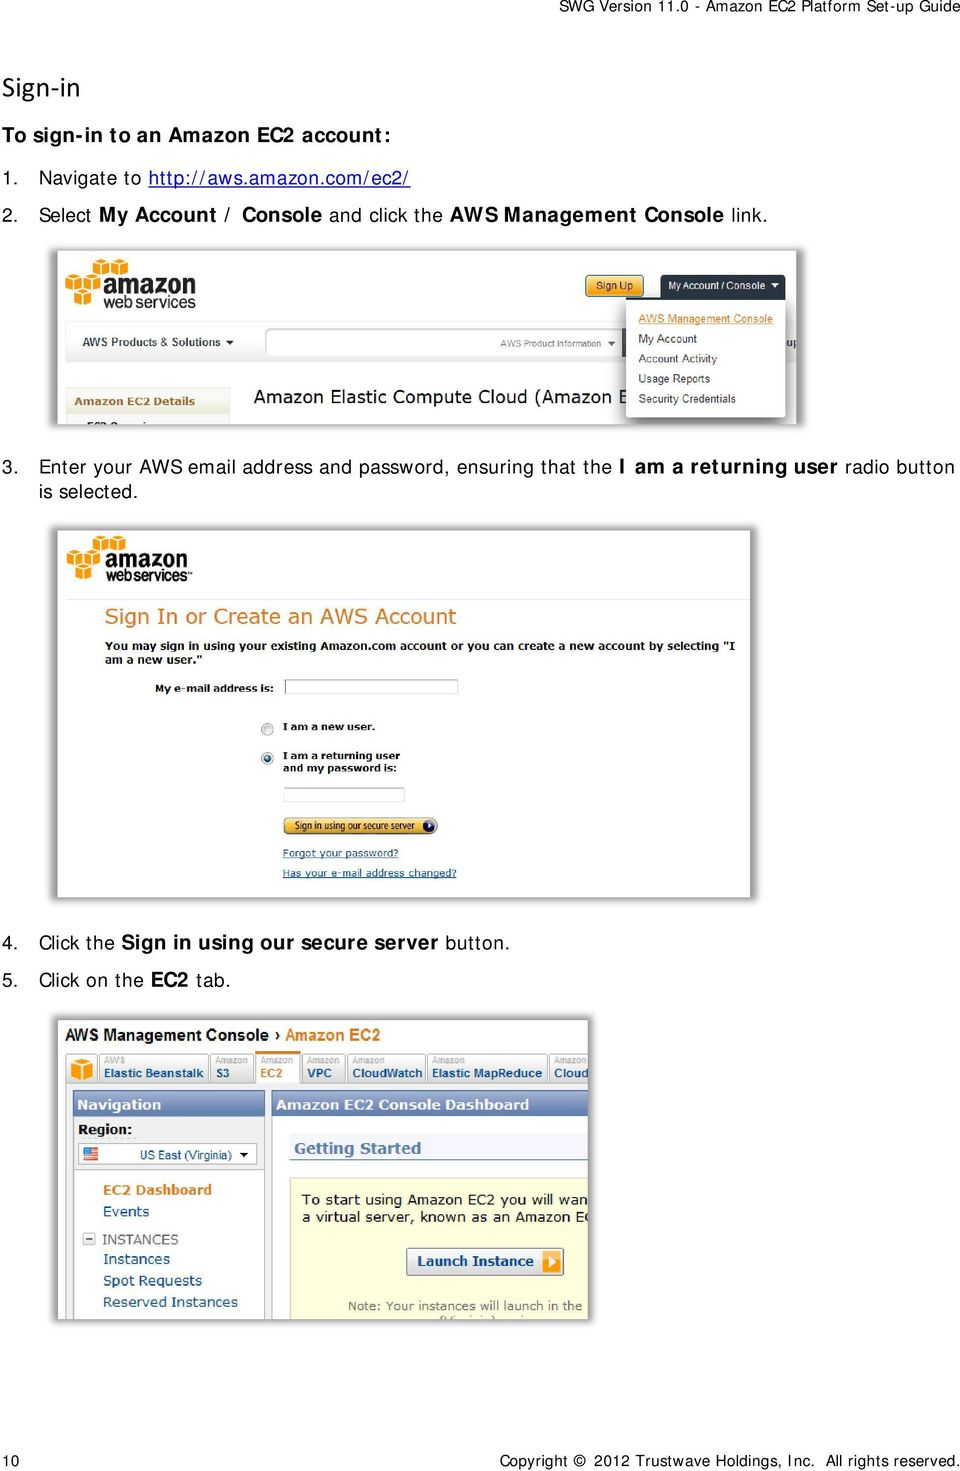 Enter your AWS email address and password, ensuring that the I am a returning user radio button is